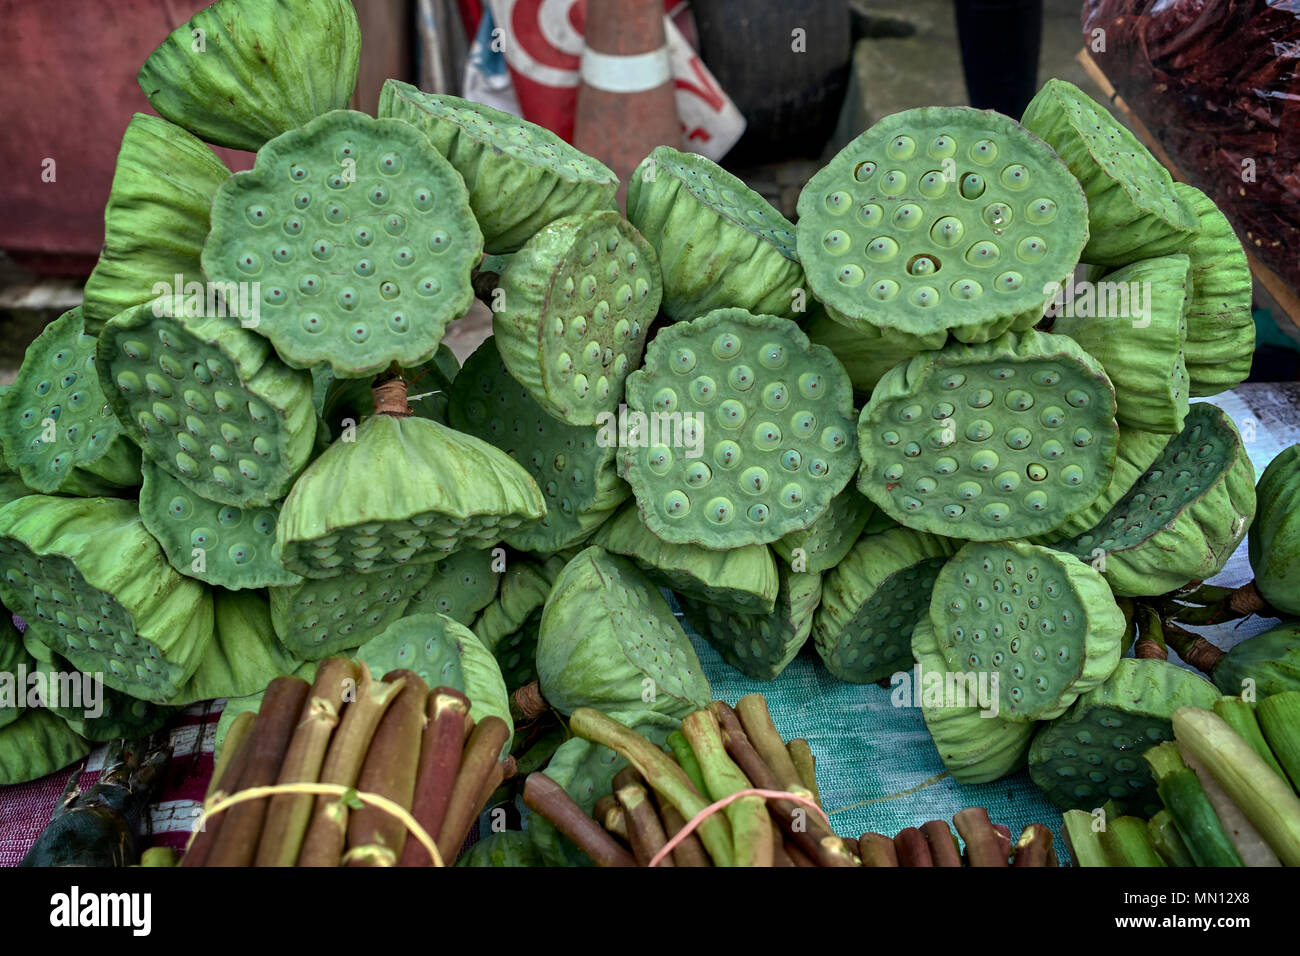 Lotus Pods For Sale As Edible Food On A Thailand Street Market Stall